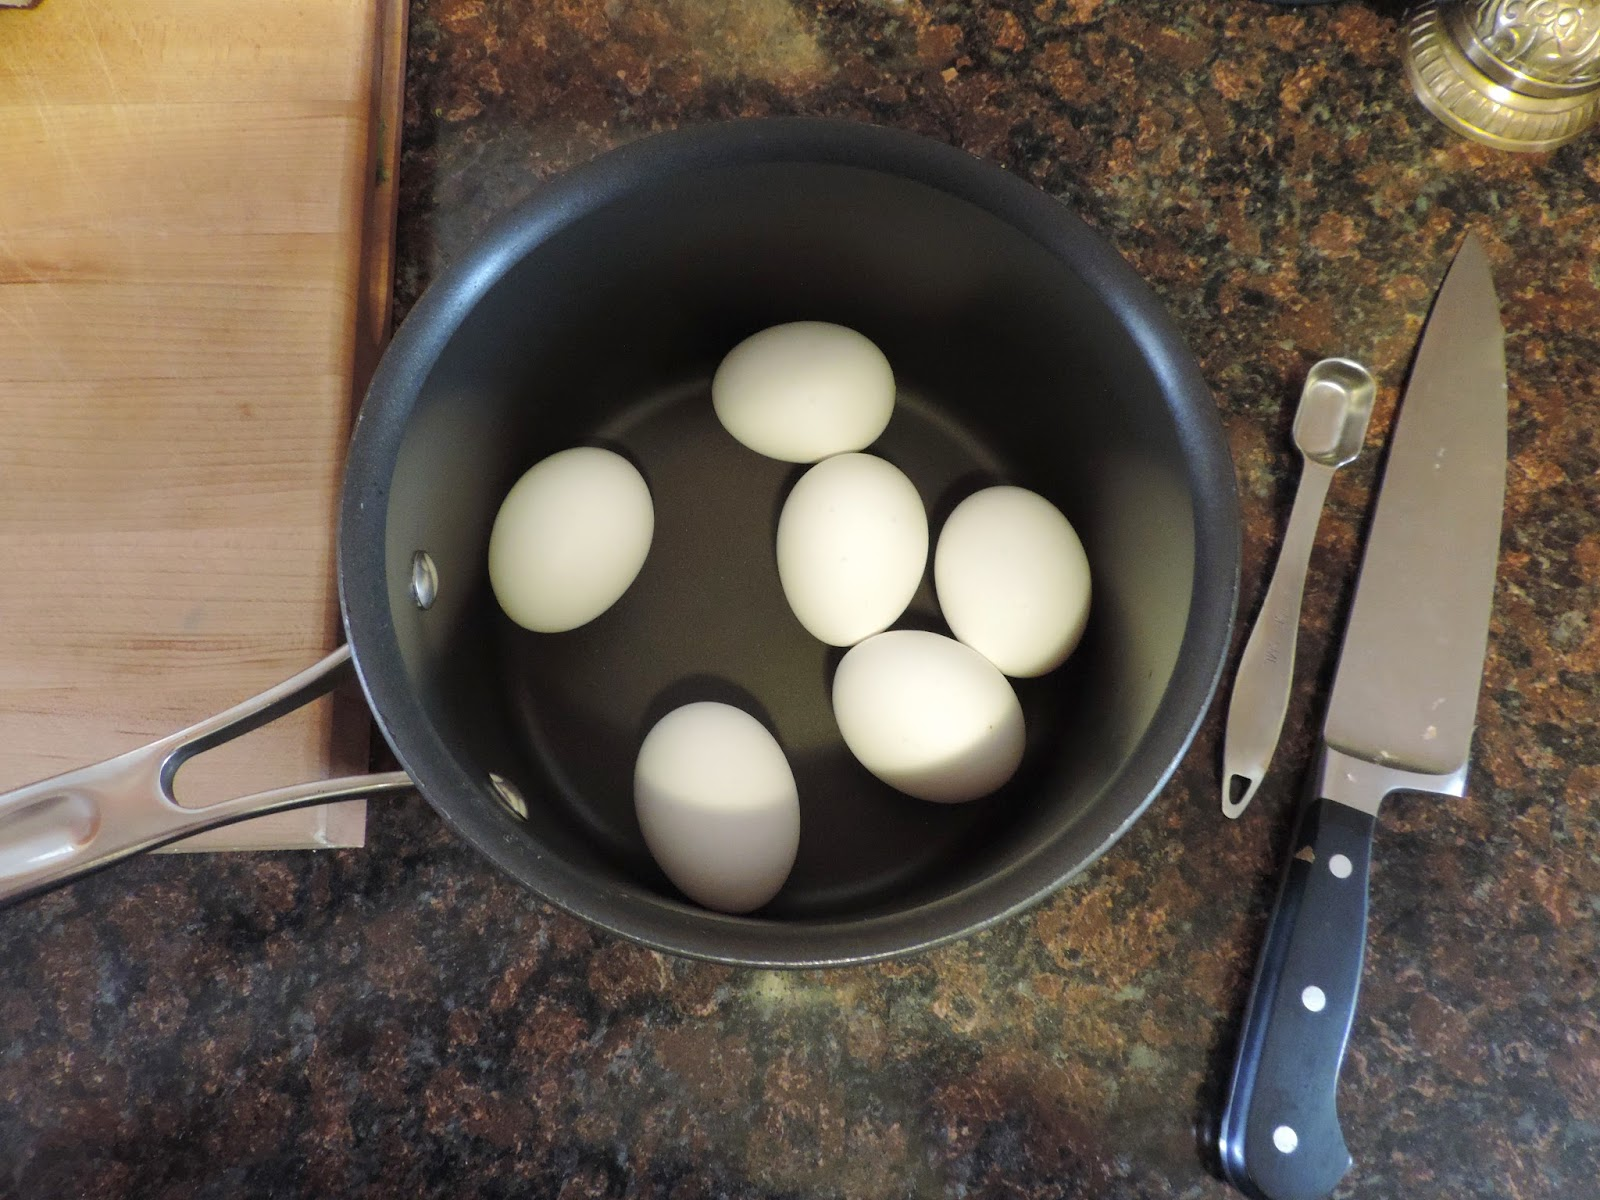 The eggs placed into an empty pot.